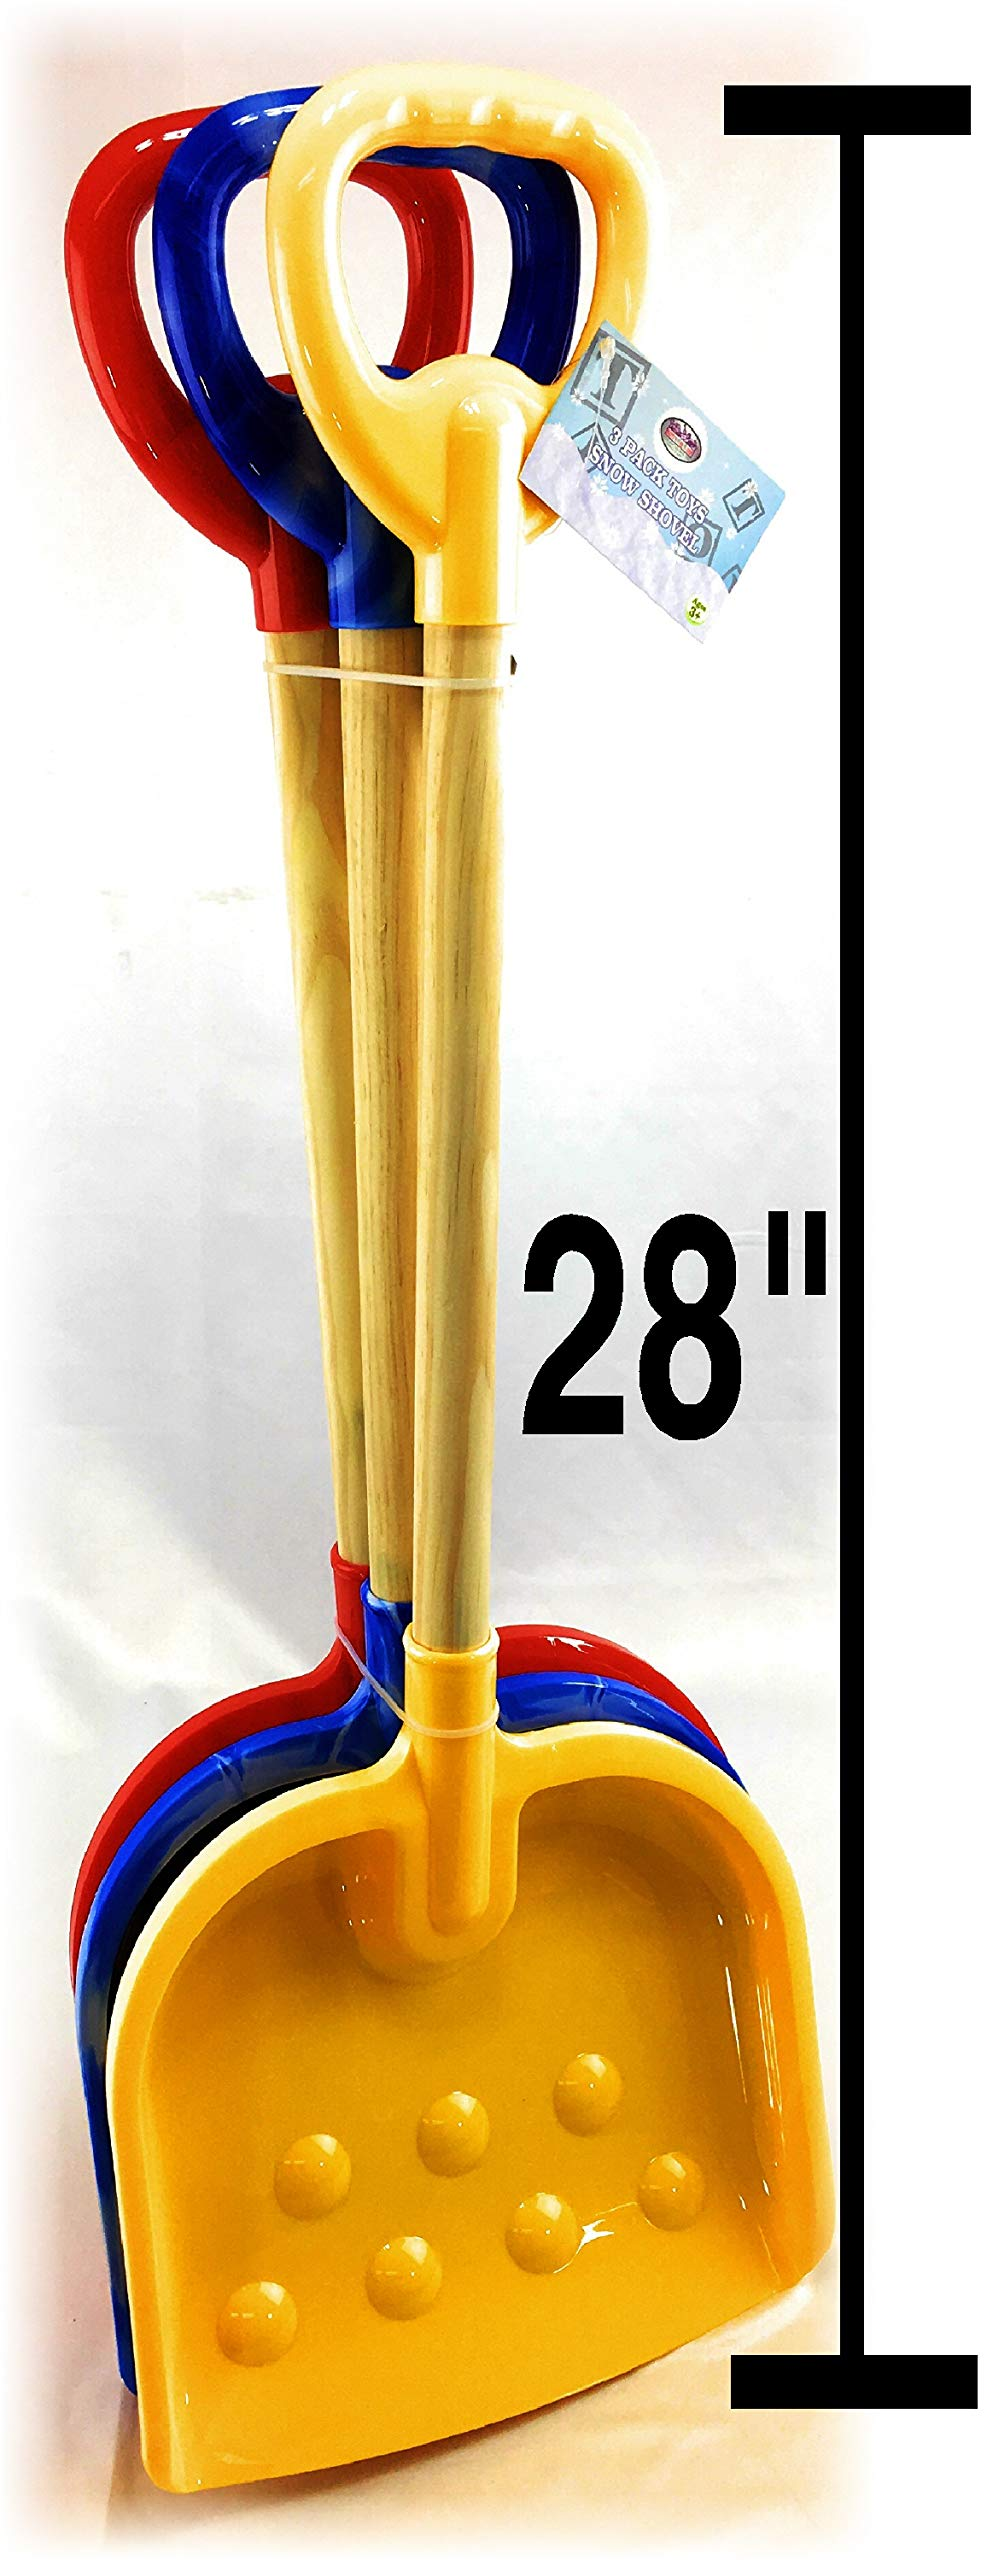 Matty's Toy Stop 28'' Heavy Duty Wooden Snow Shovels with Plastic Scoop & Handle for Kids Red, Yellow & Blue Swirl Gift Set Bundle - 3 Pack by Matty's Toy Stop (Image #3)